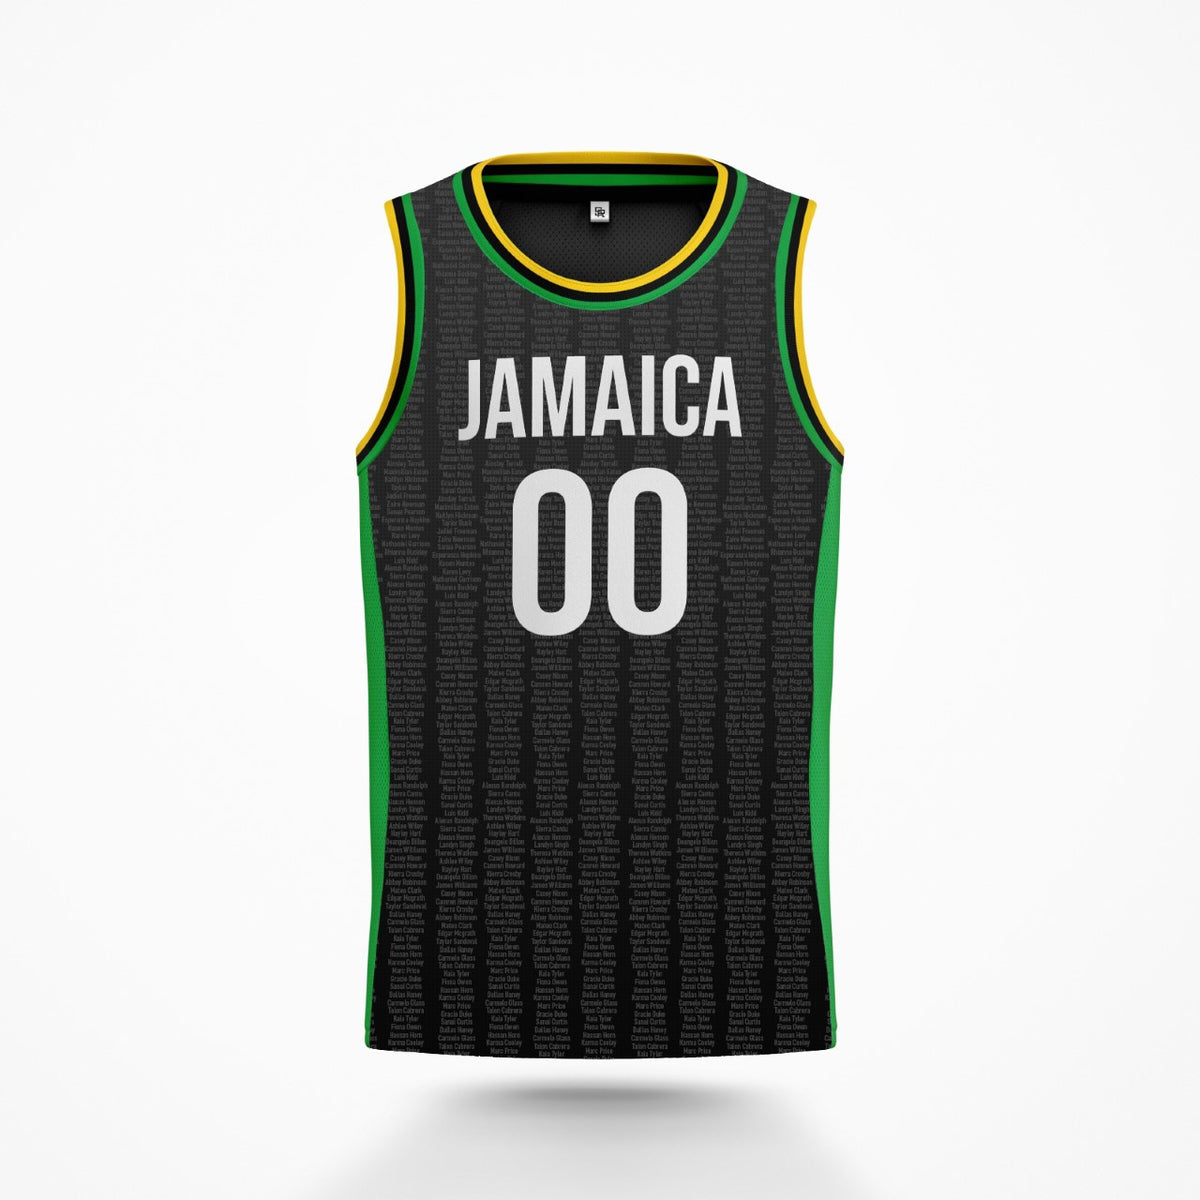 Support Jamaica Basketball Project